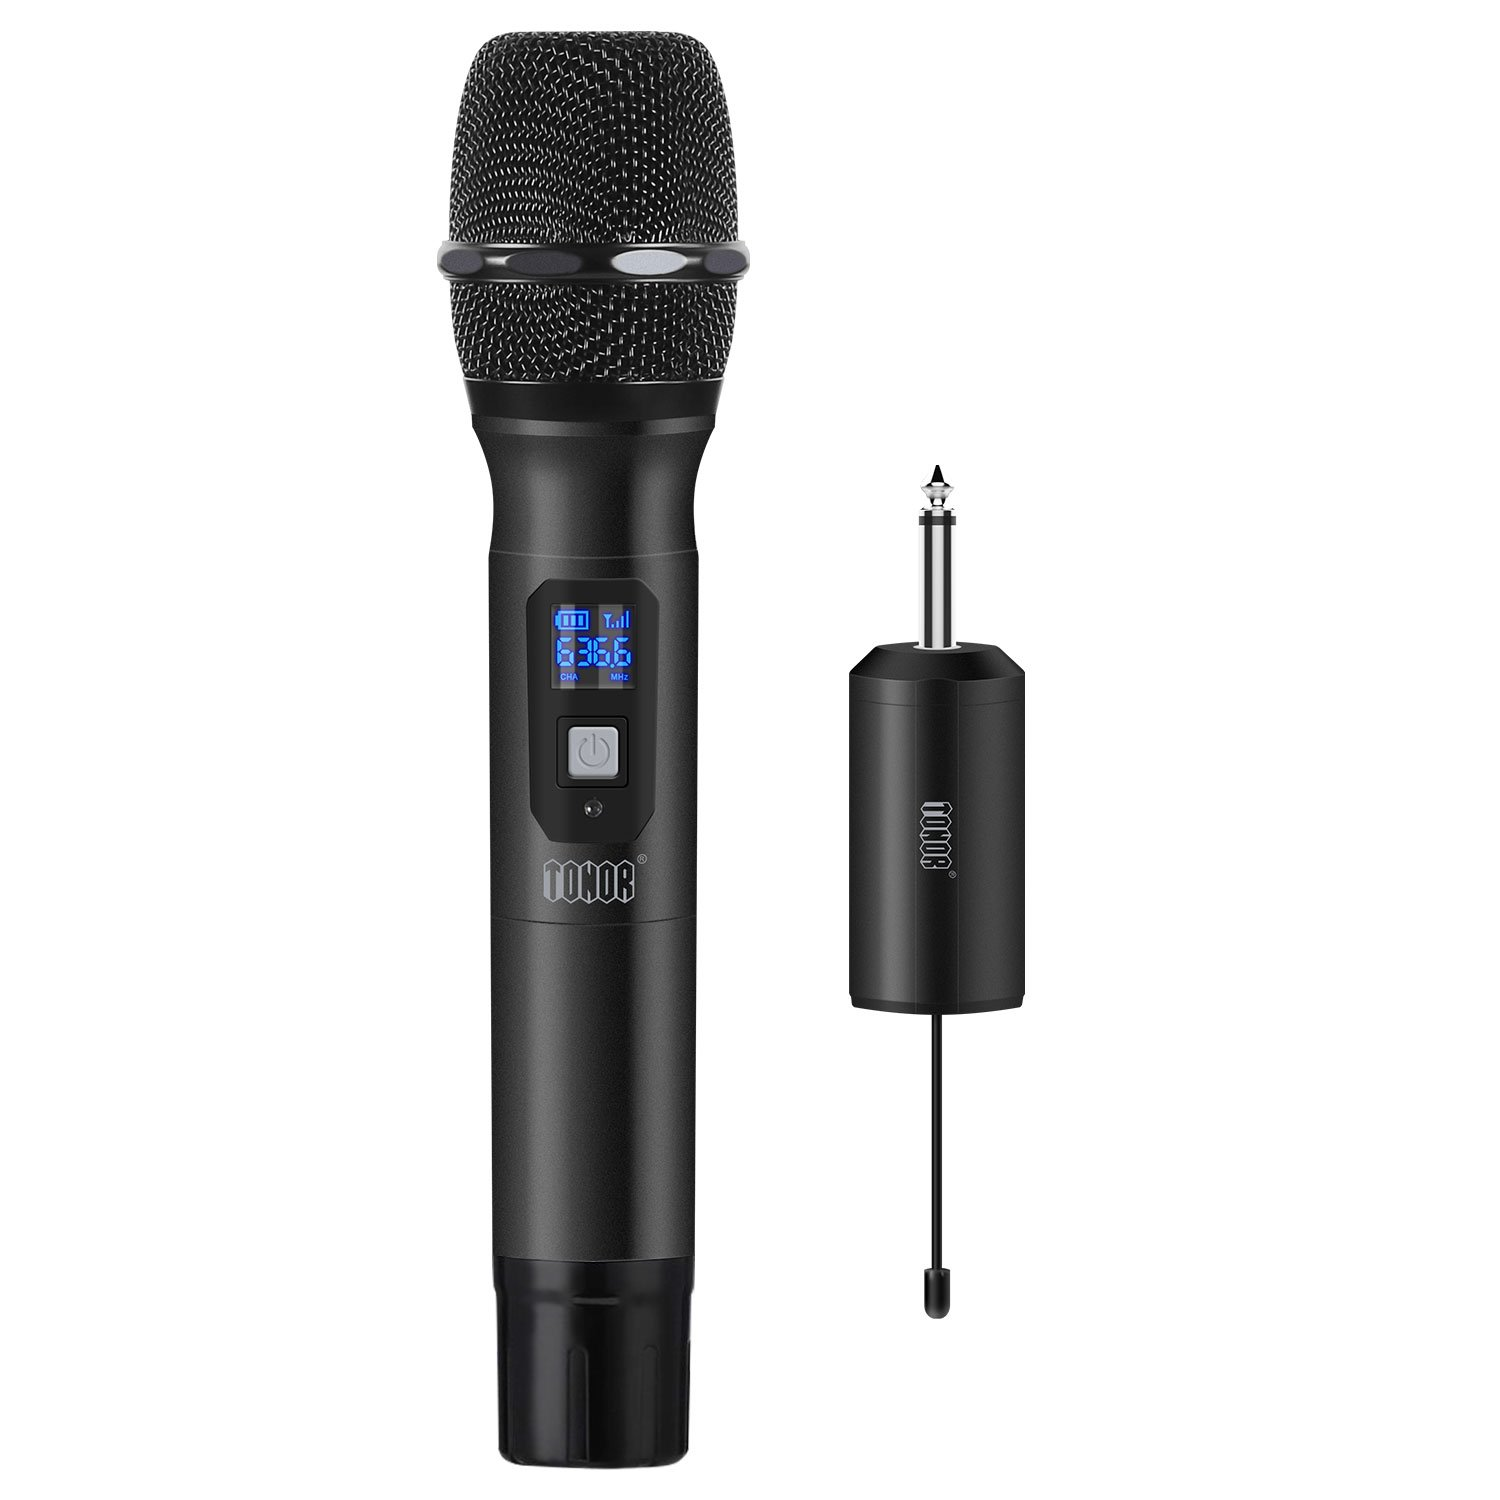 TONOR Wireless Microphone Handheld Mic UHF 25 Channel with Mini Receiver 1/4'' Output for Stage/Church/Karaoke/Party/Business Meeting/PA Systems, Black